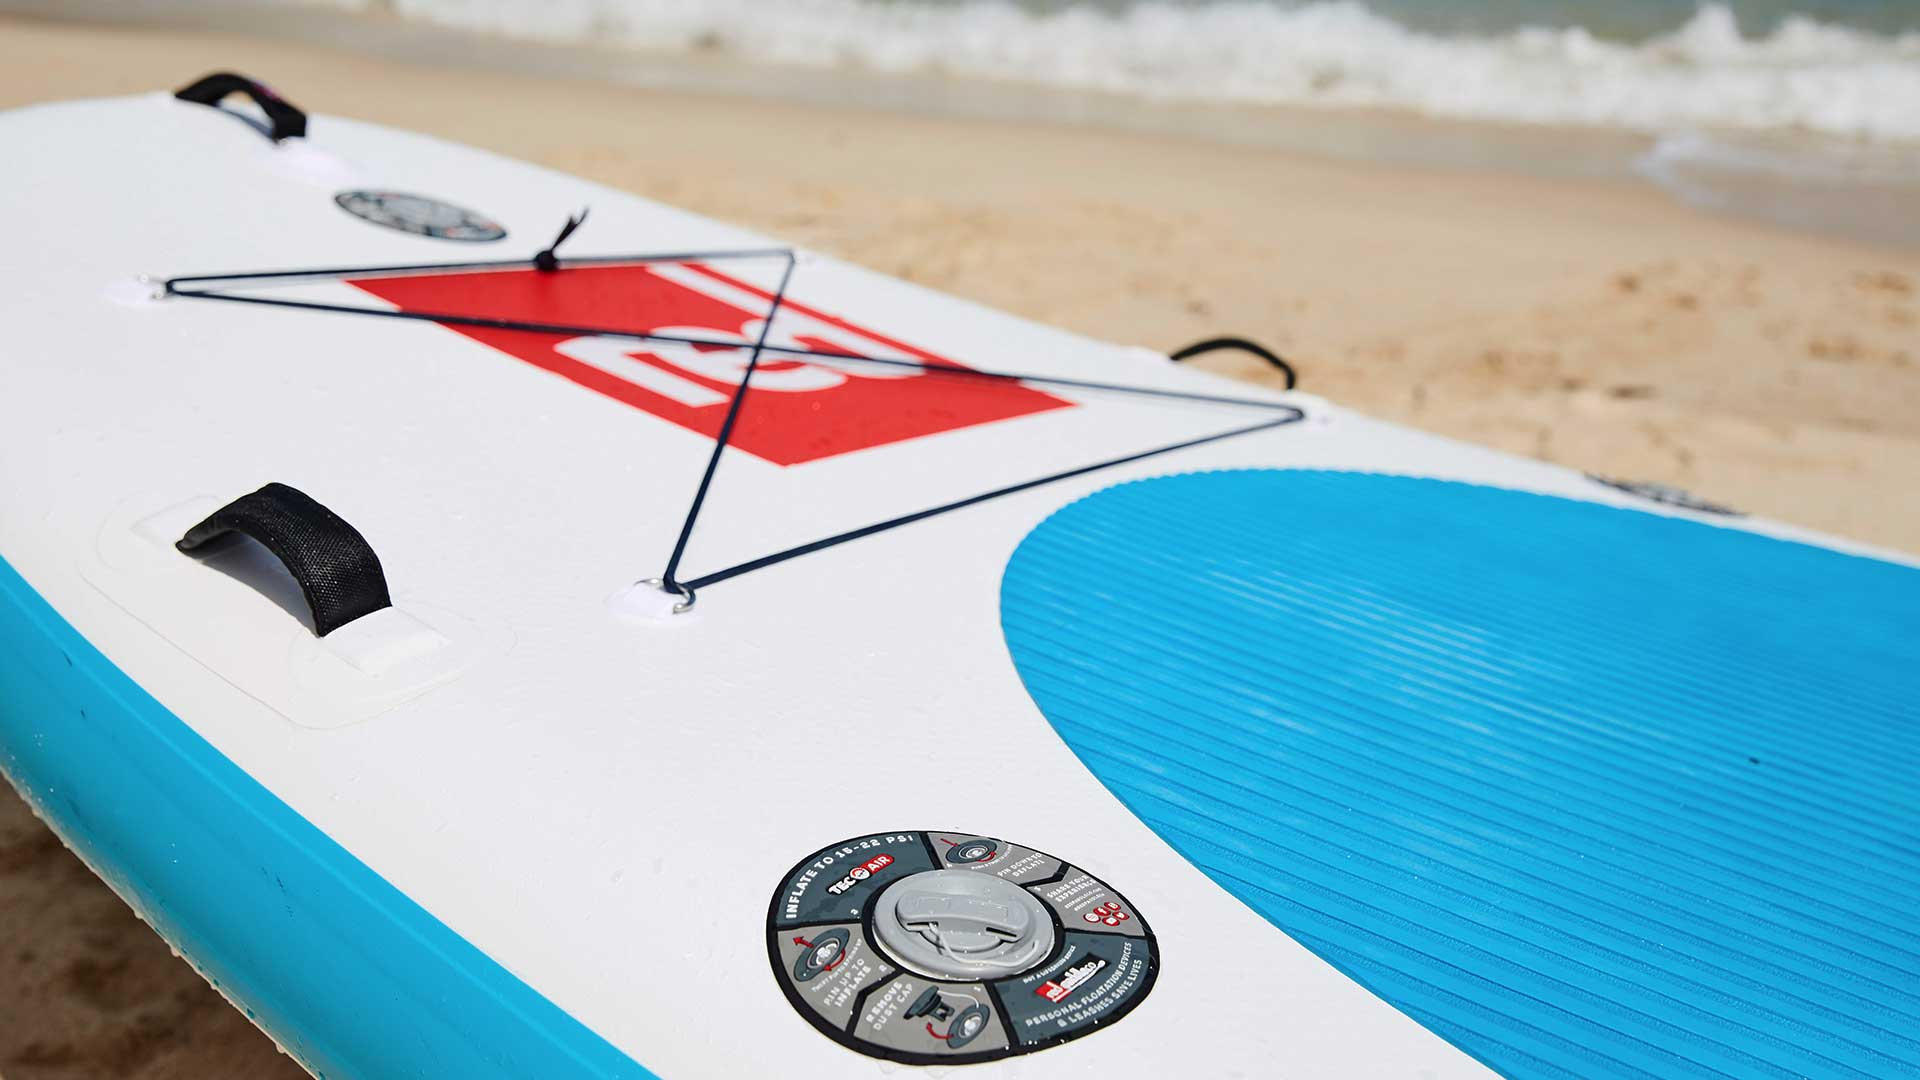 redpaddleco-170-xl-ride-inflatable-paddle-board-desktop-gallery-valve